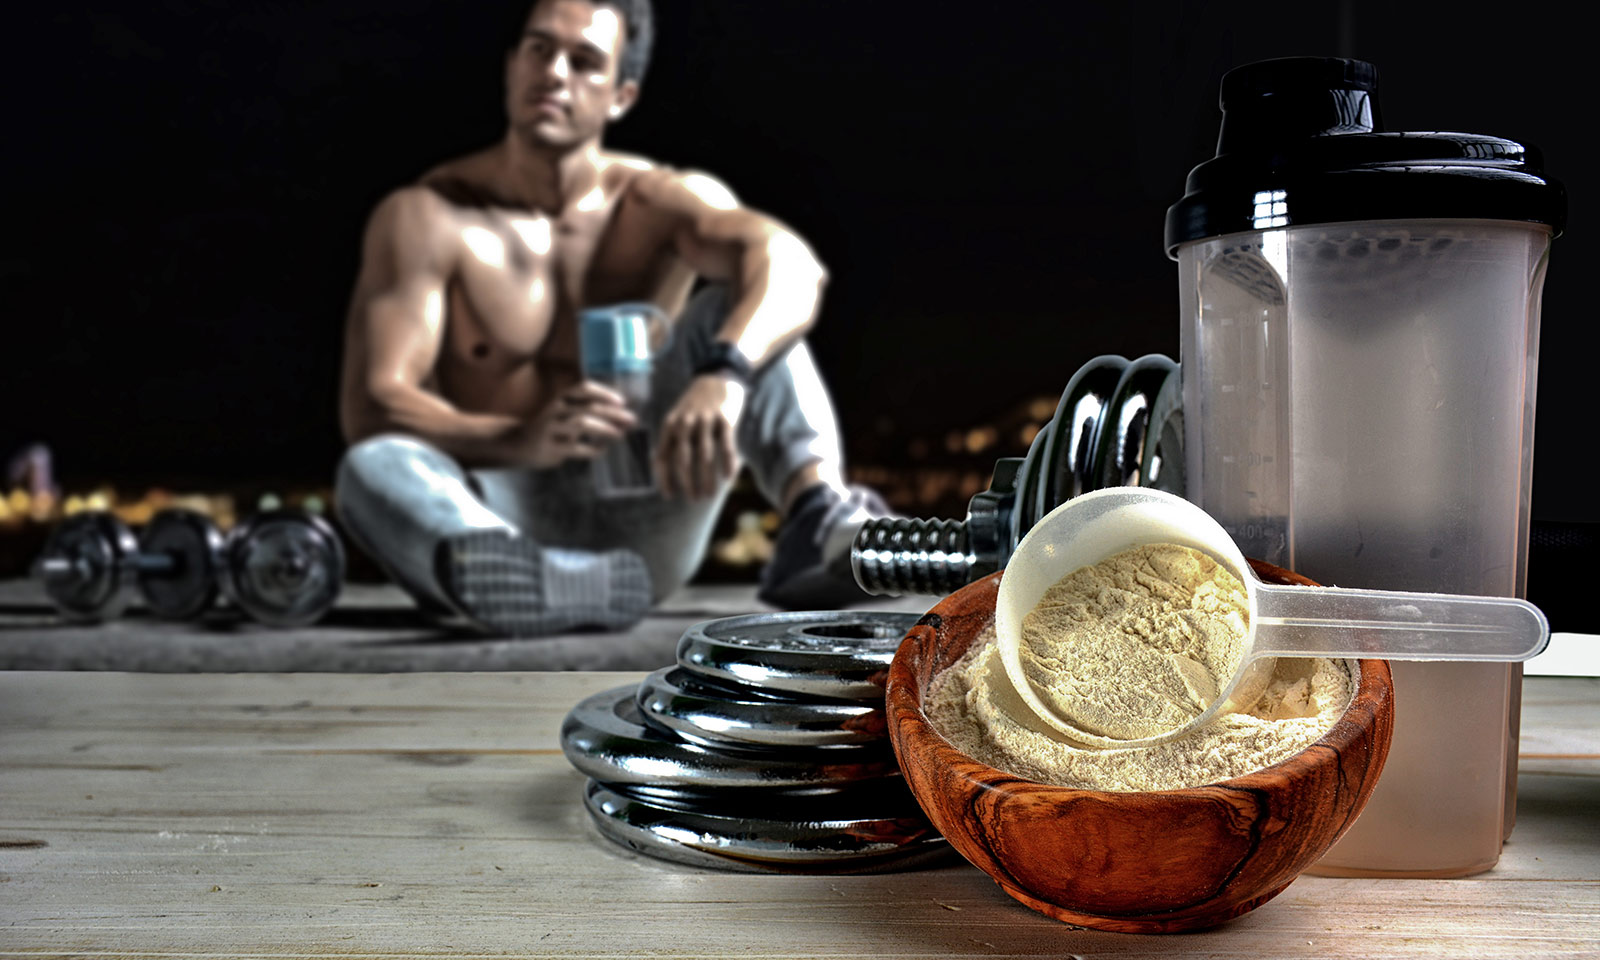 6-supplements-to-get-you-lean-and-shredded